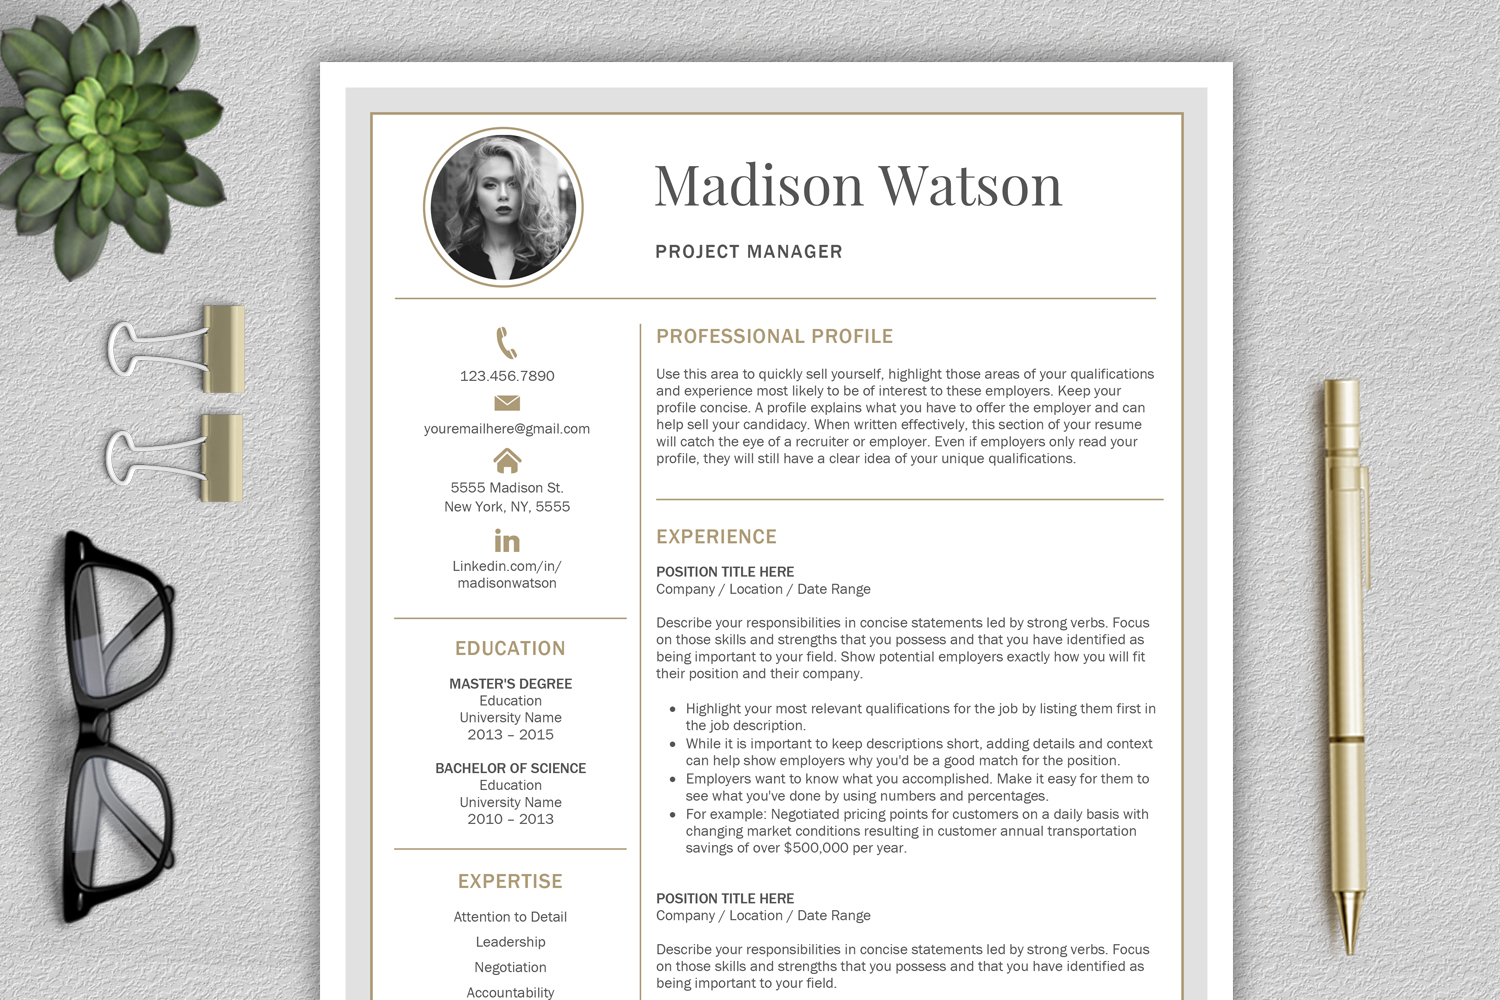 Professional Resume Template / CV Template / Resume for Word with Cover Letter example image 1